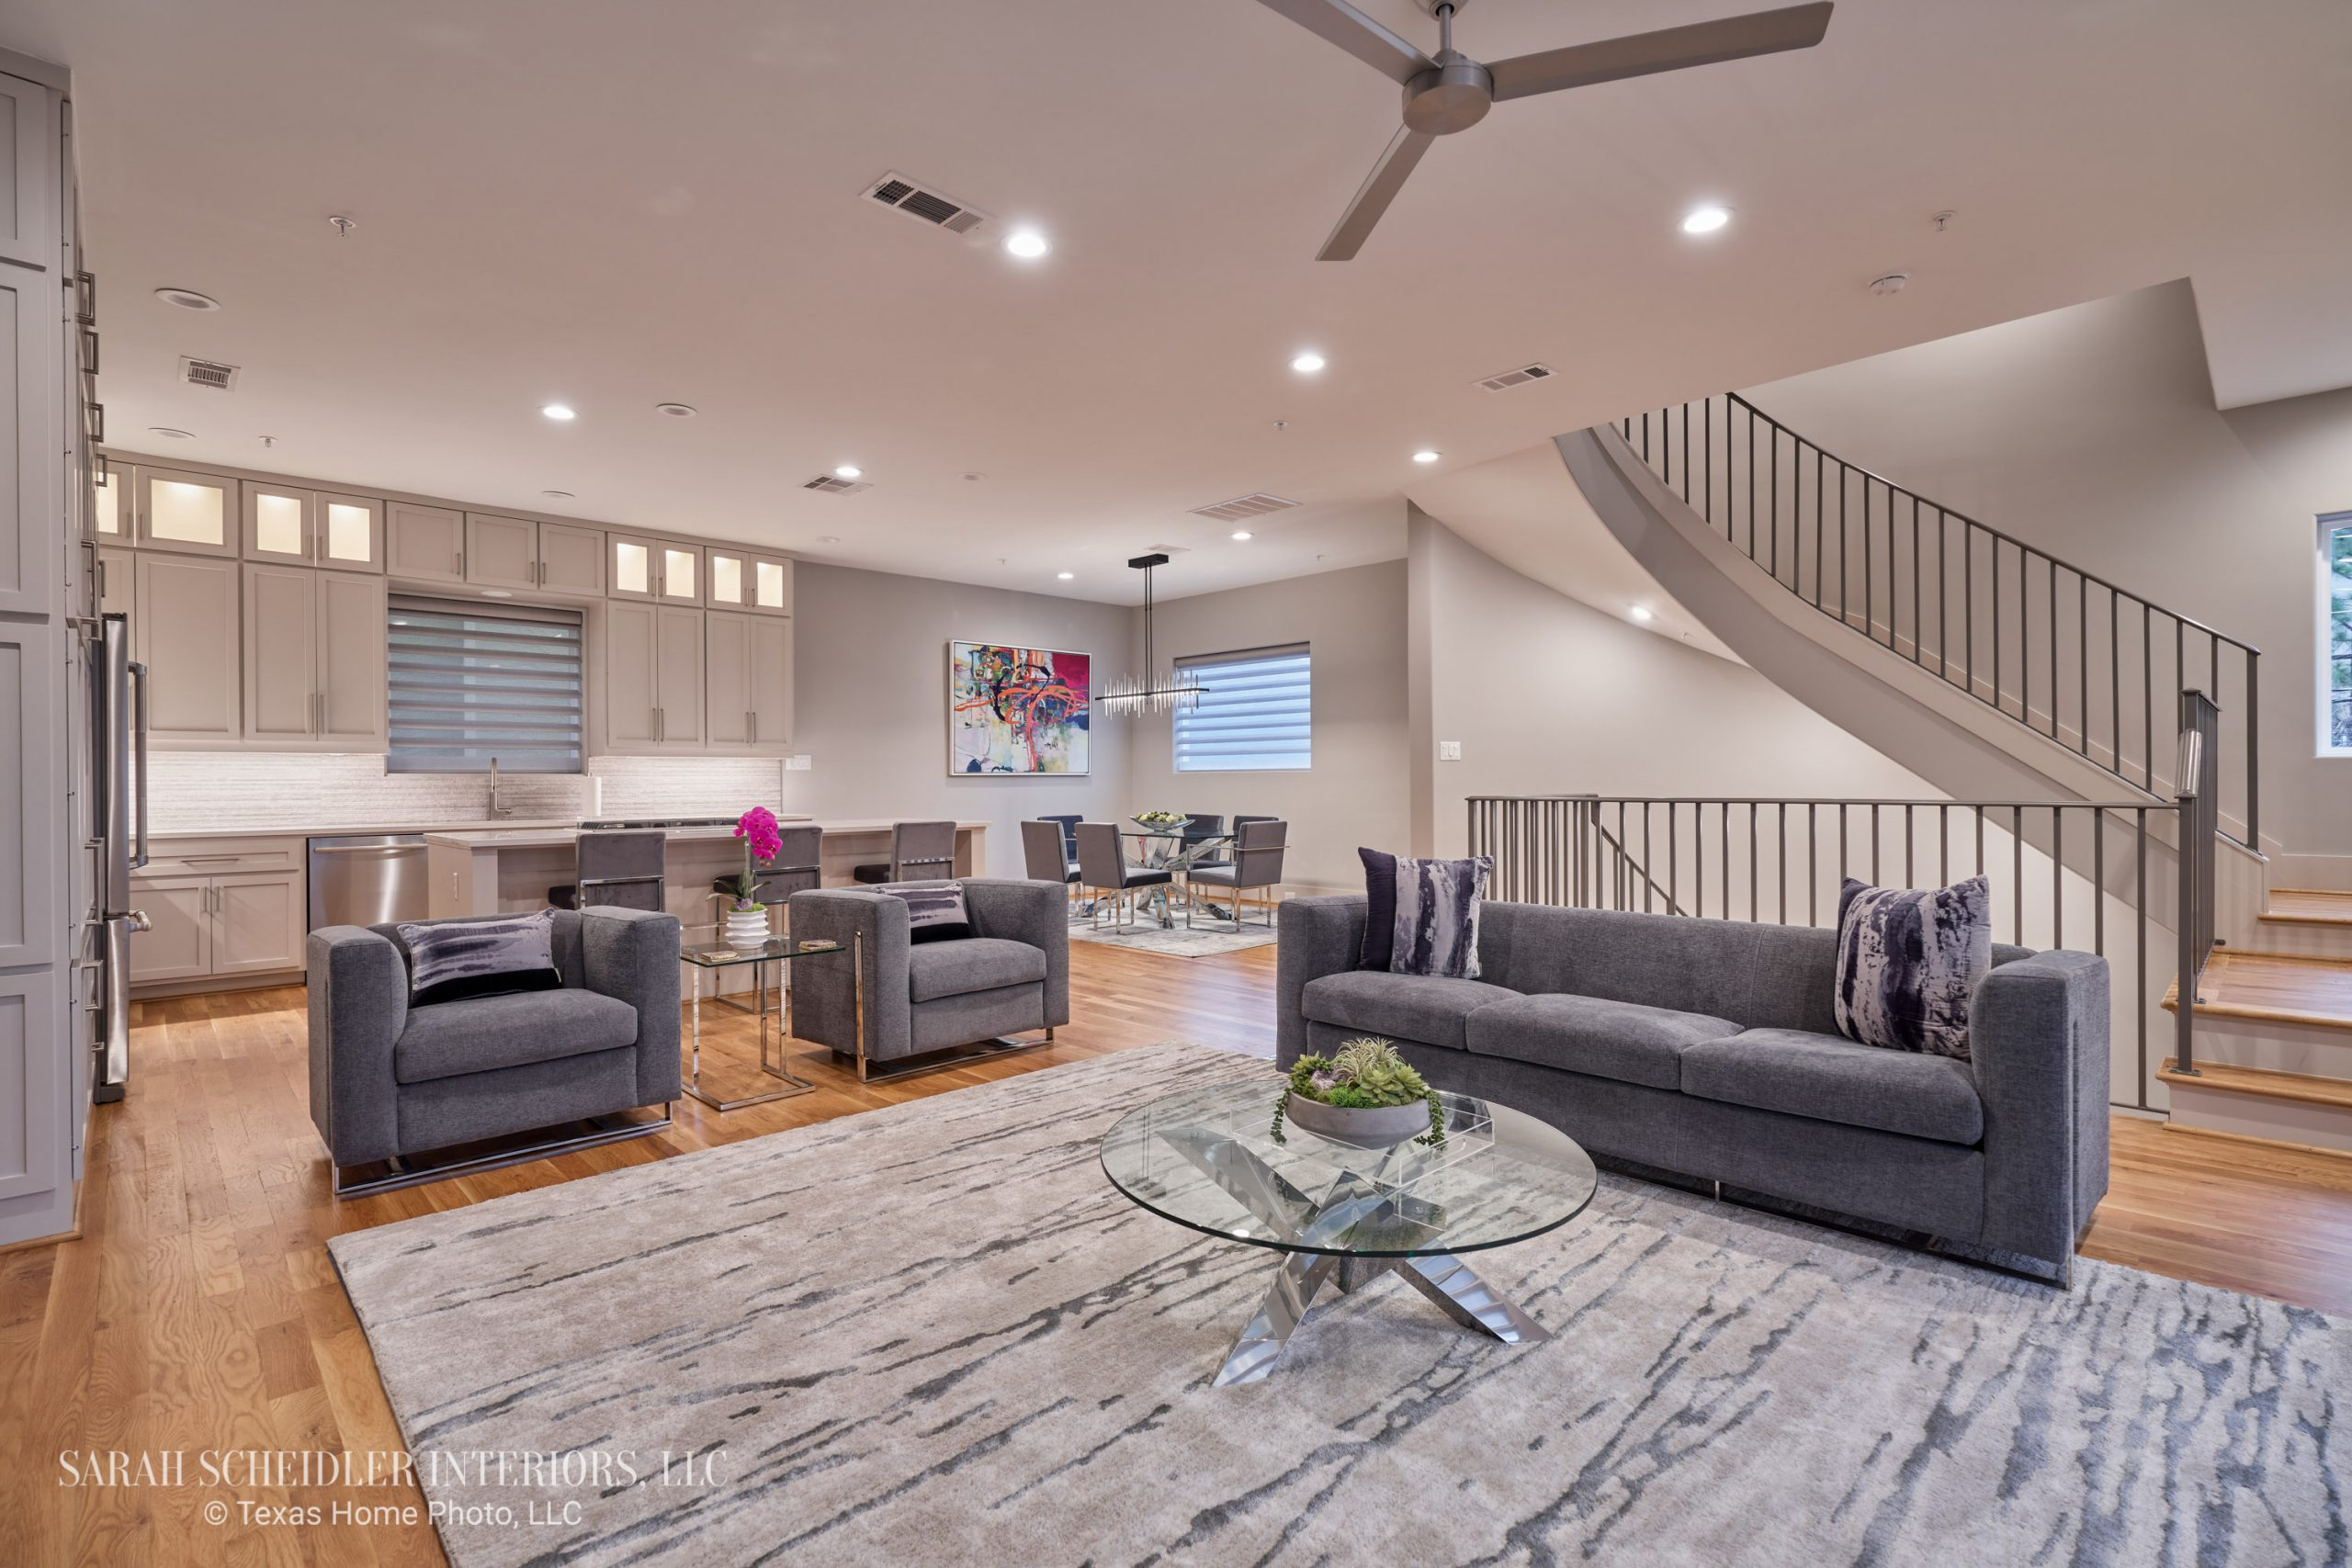 Modern Open-Concept Living Room, Kitchen, and Dining Room Designs